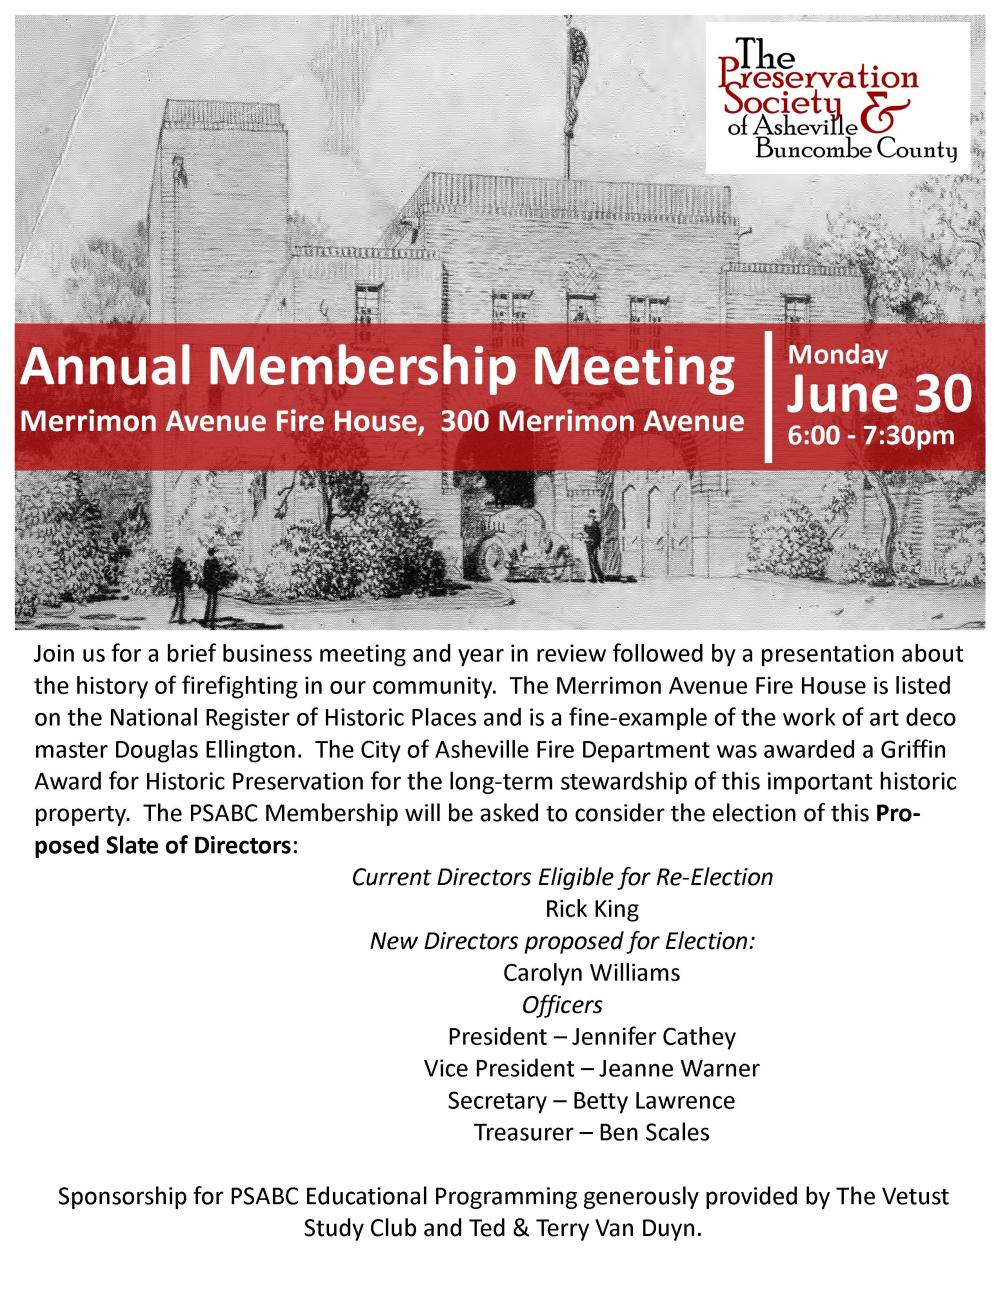 2014 Annual Membership Meeting